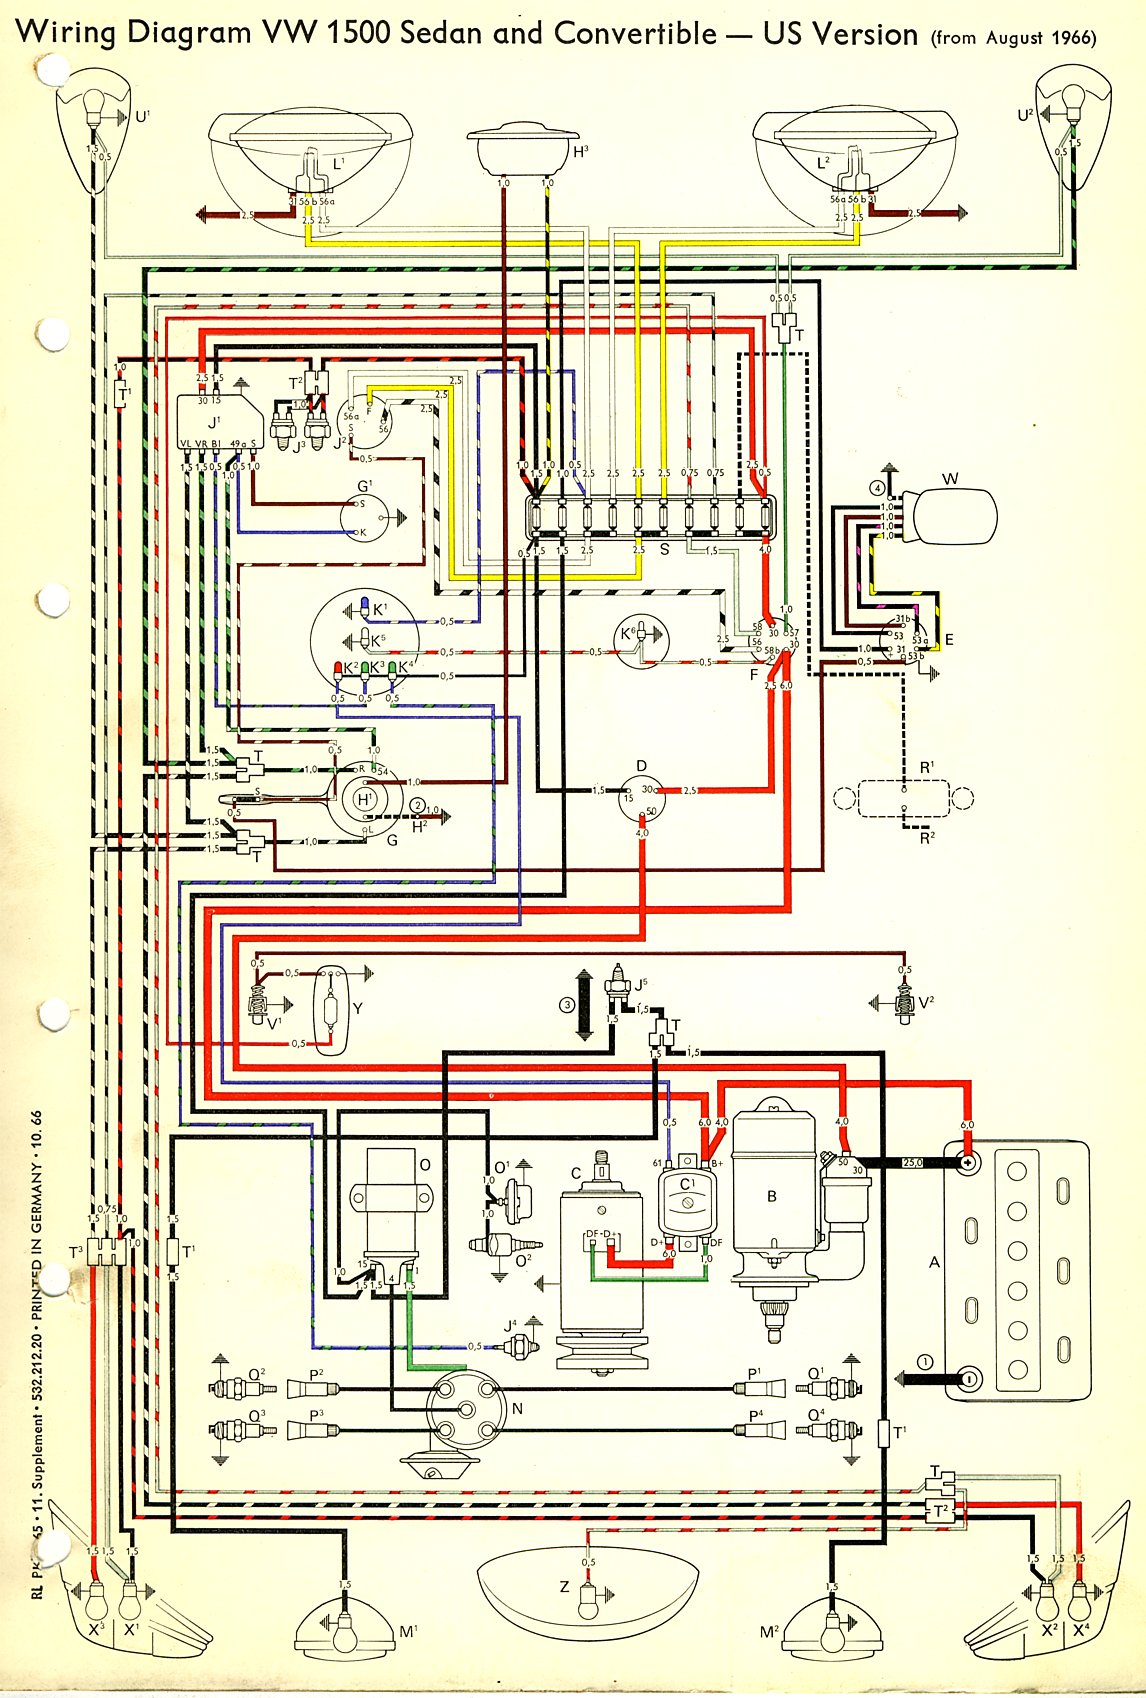 thesamba com type 1 wiring diagrams rh thesamba com vw wiring diagram pdf vw wiring diagram alternator